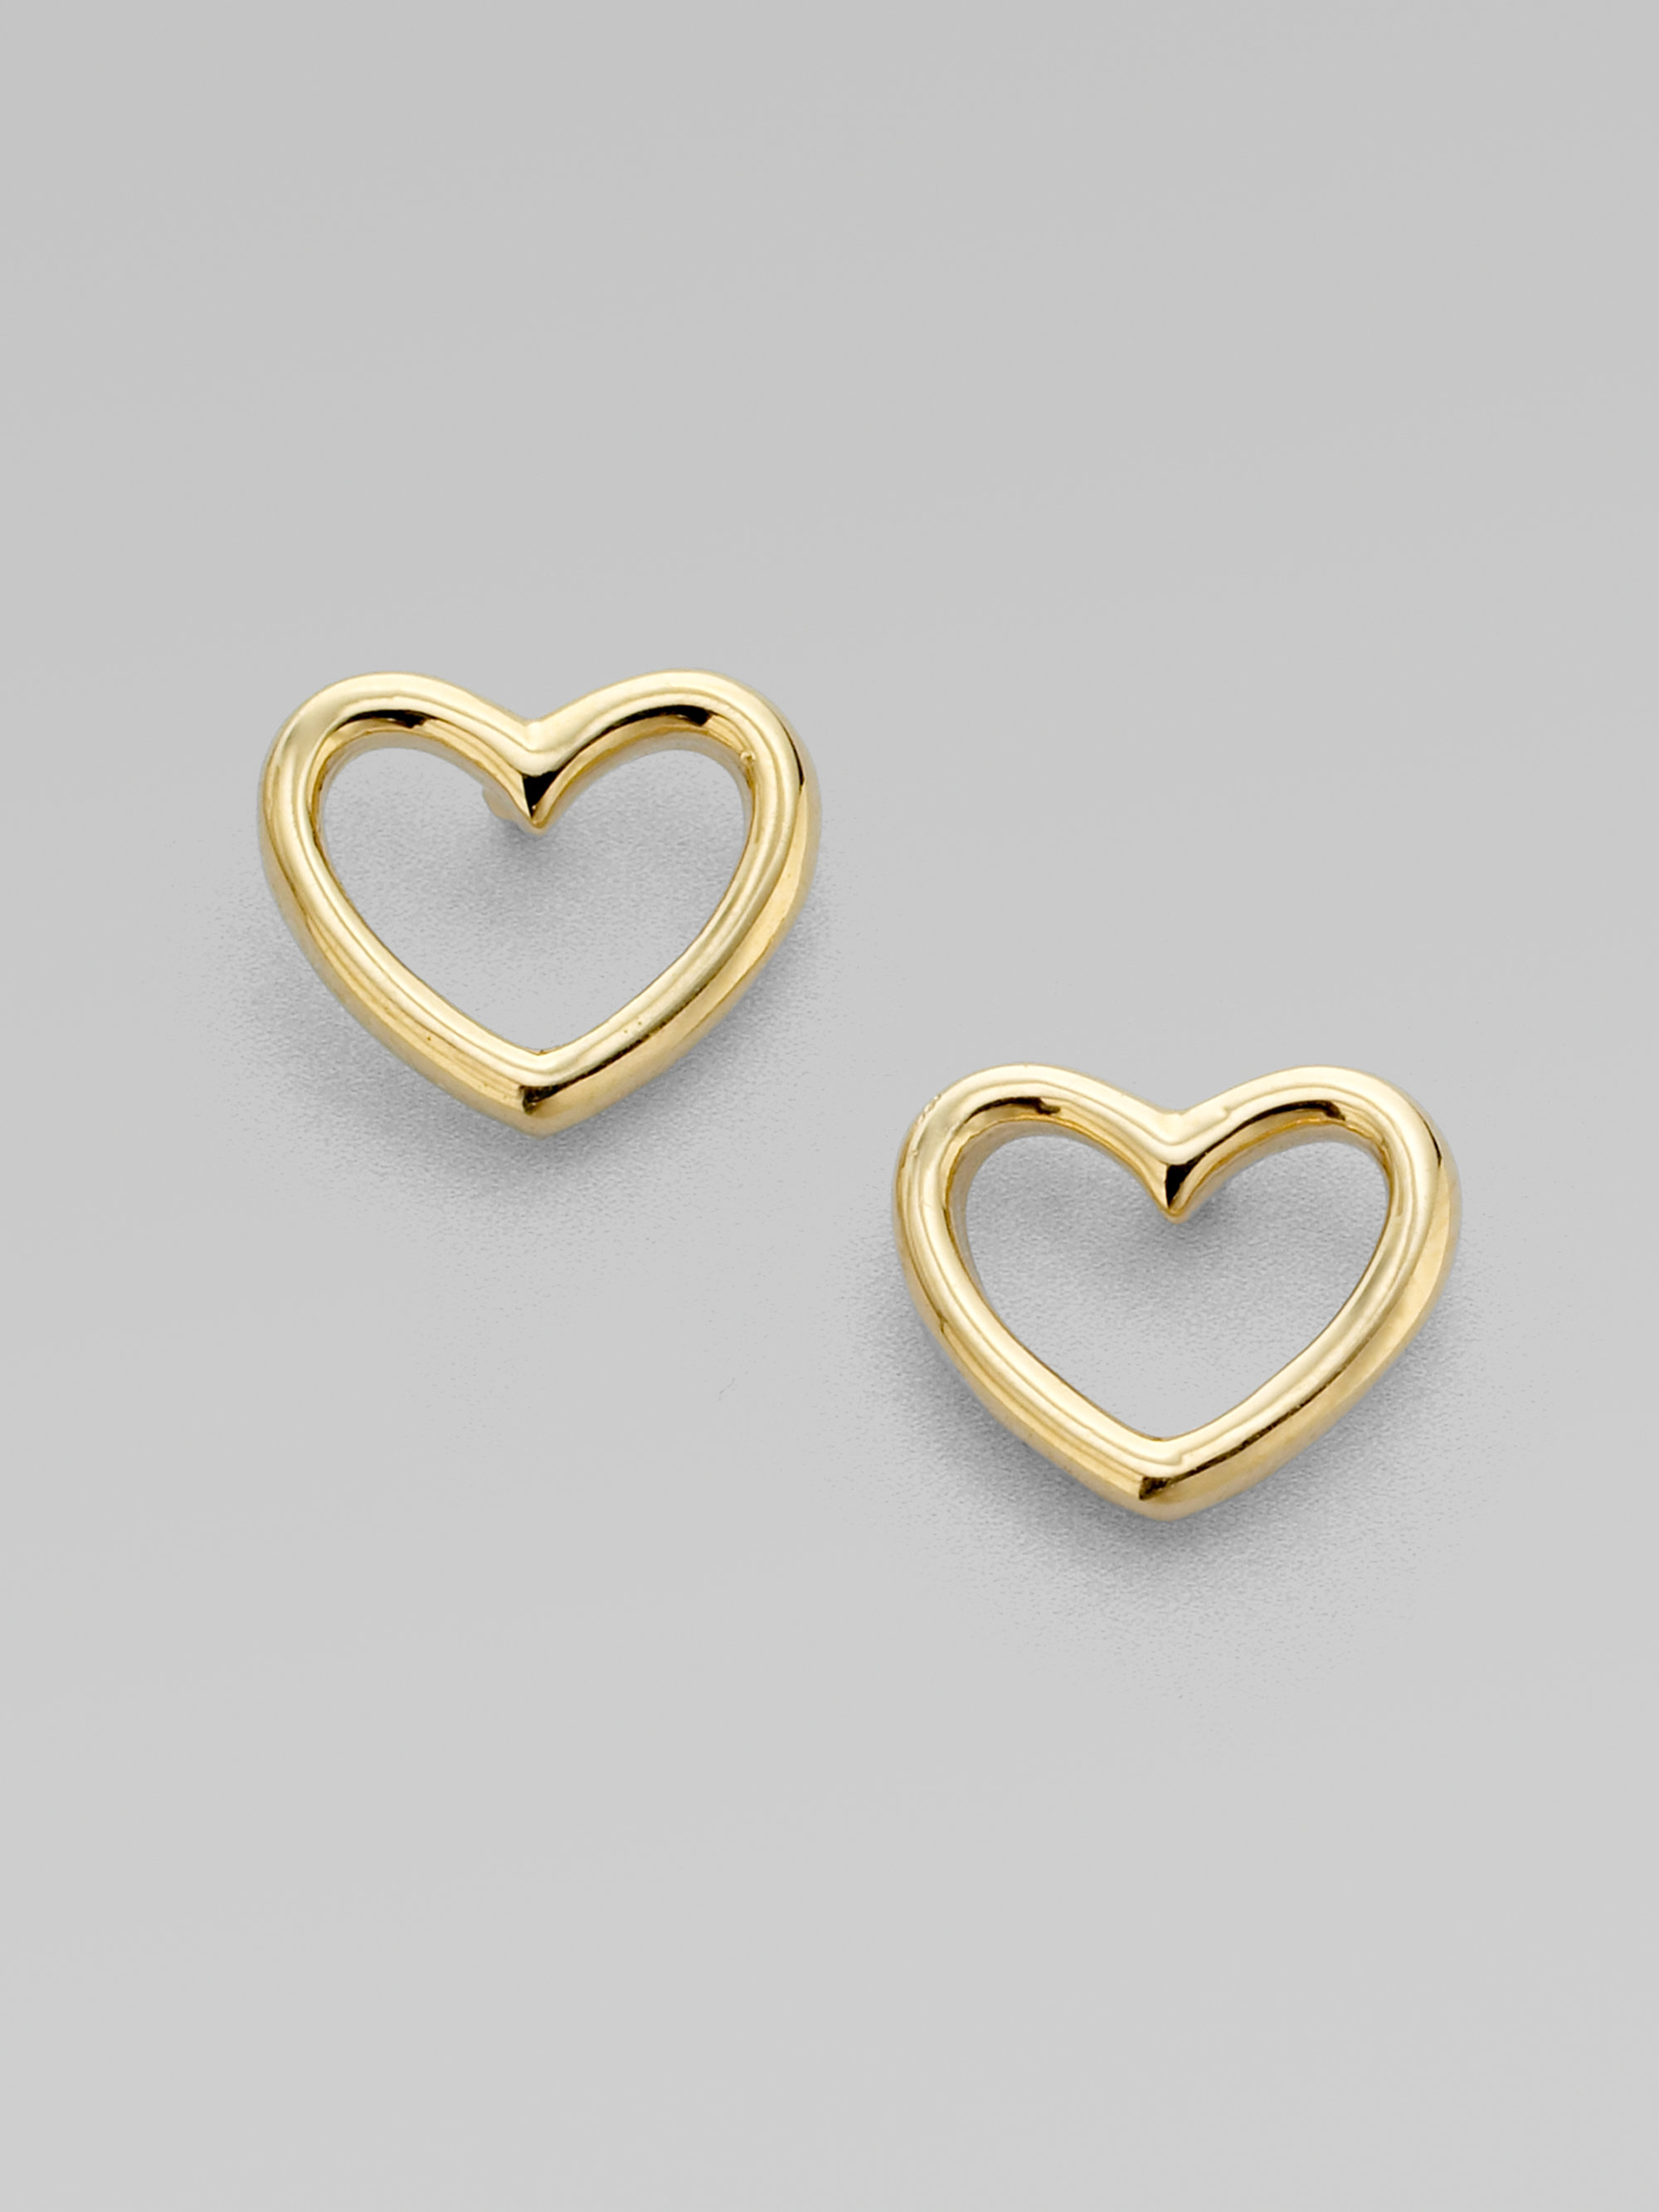 shaped earrings diamond yg yellow carat heart jewelry studs in nl ctw gold stud